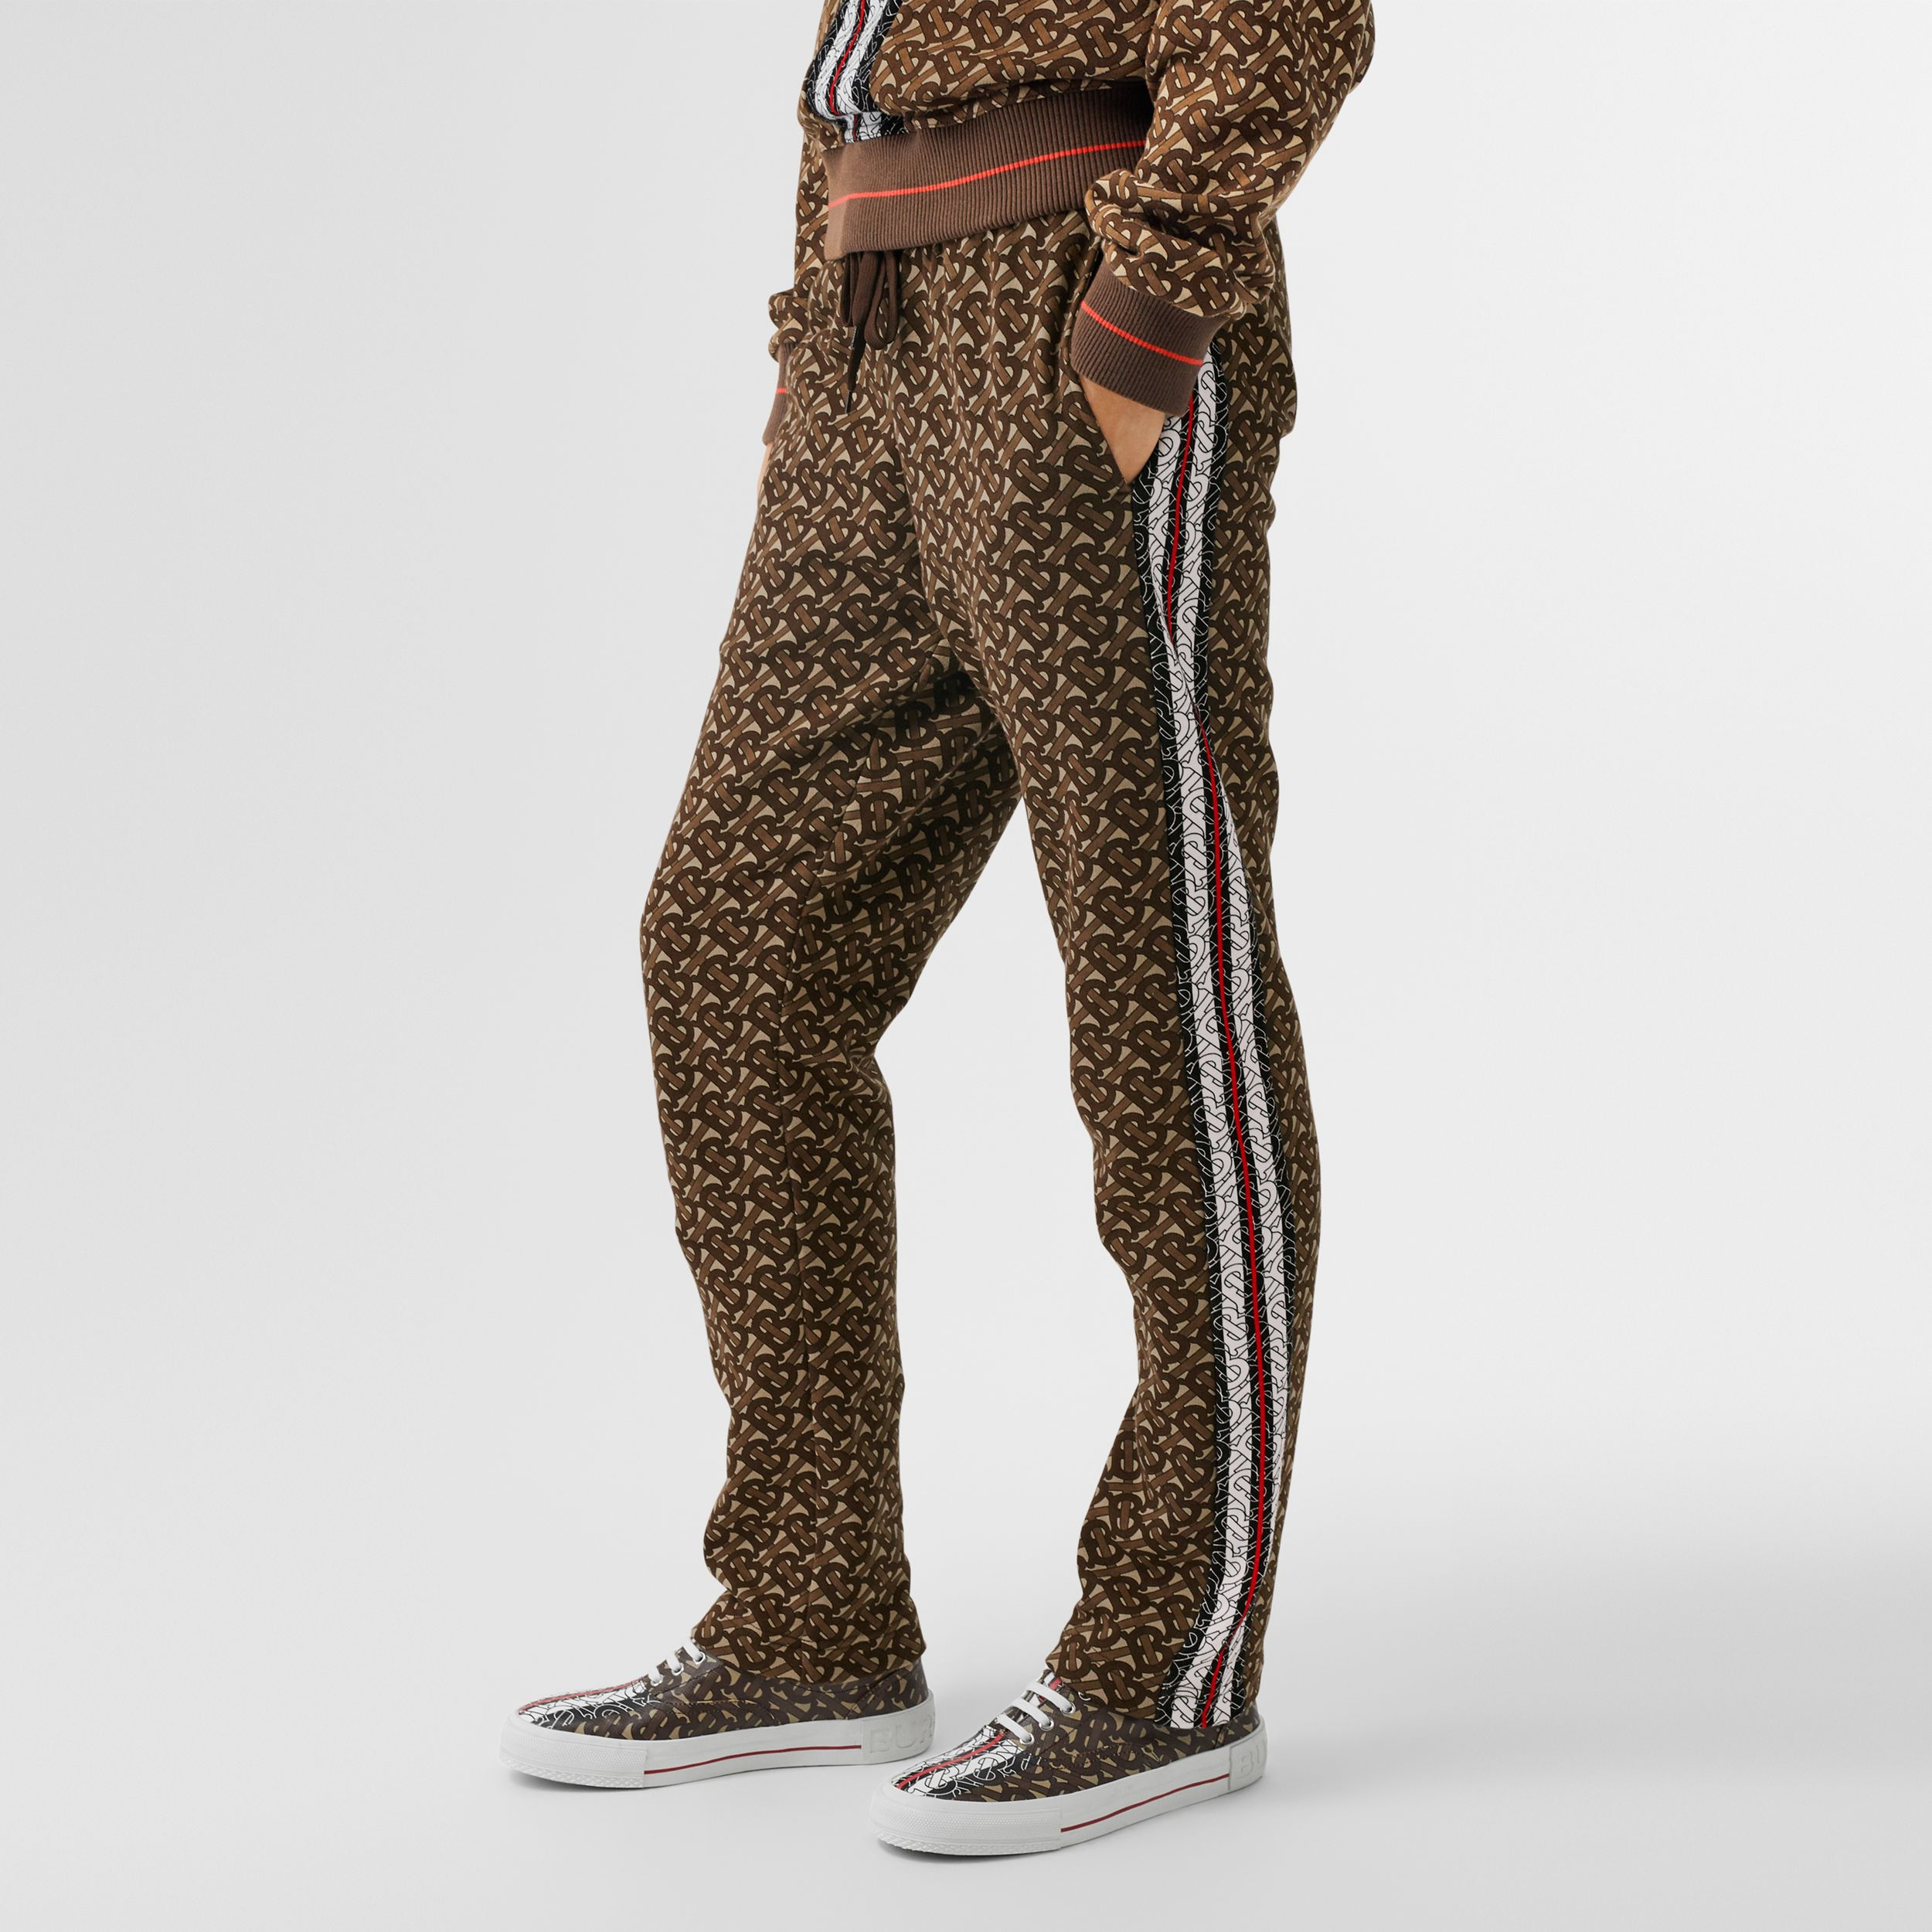 Monogram Stripe Print Cotton Trackpants in Bridle Brown - Women | Burberry - 1